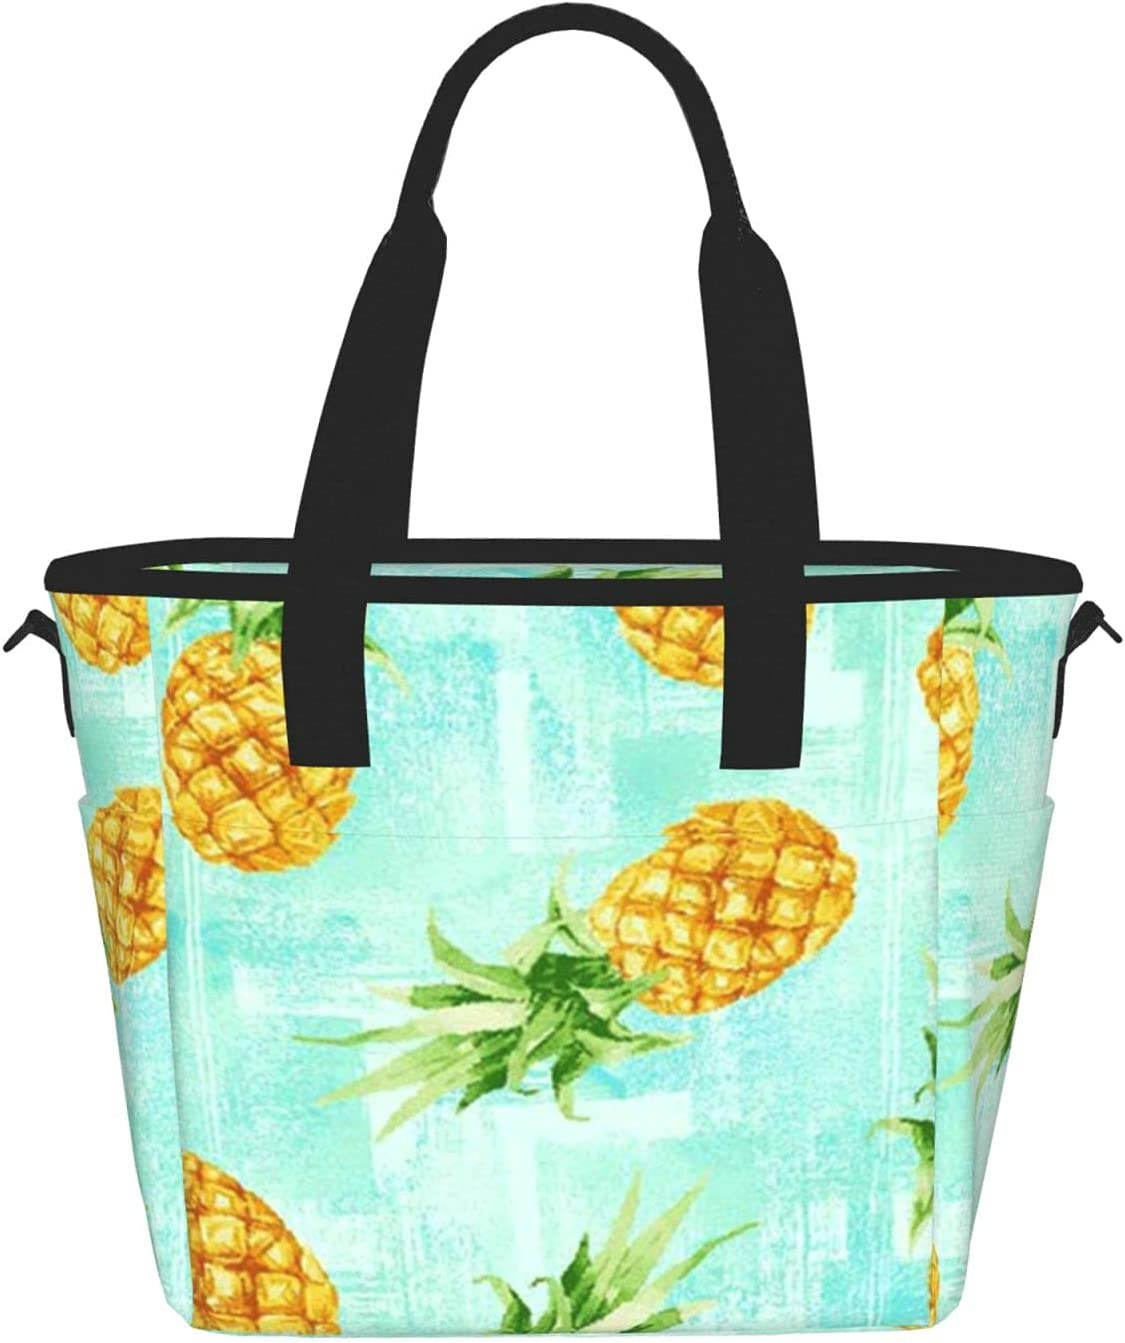 Fashion Pineappleprinting Women'S Lunch Max 68% OFF Mea Max 44% OFF Portable Bag